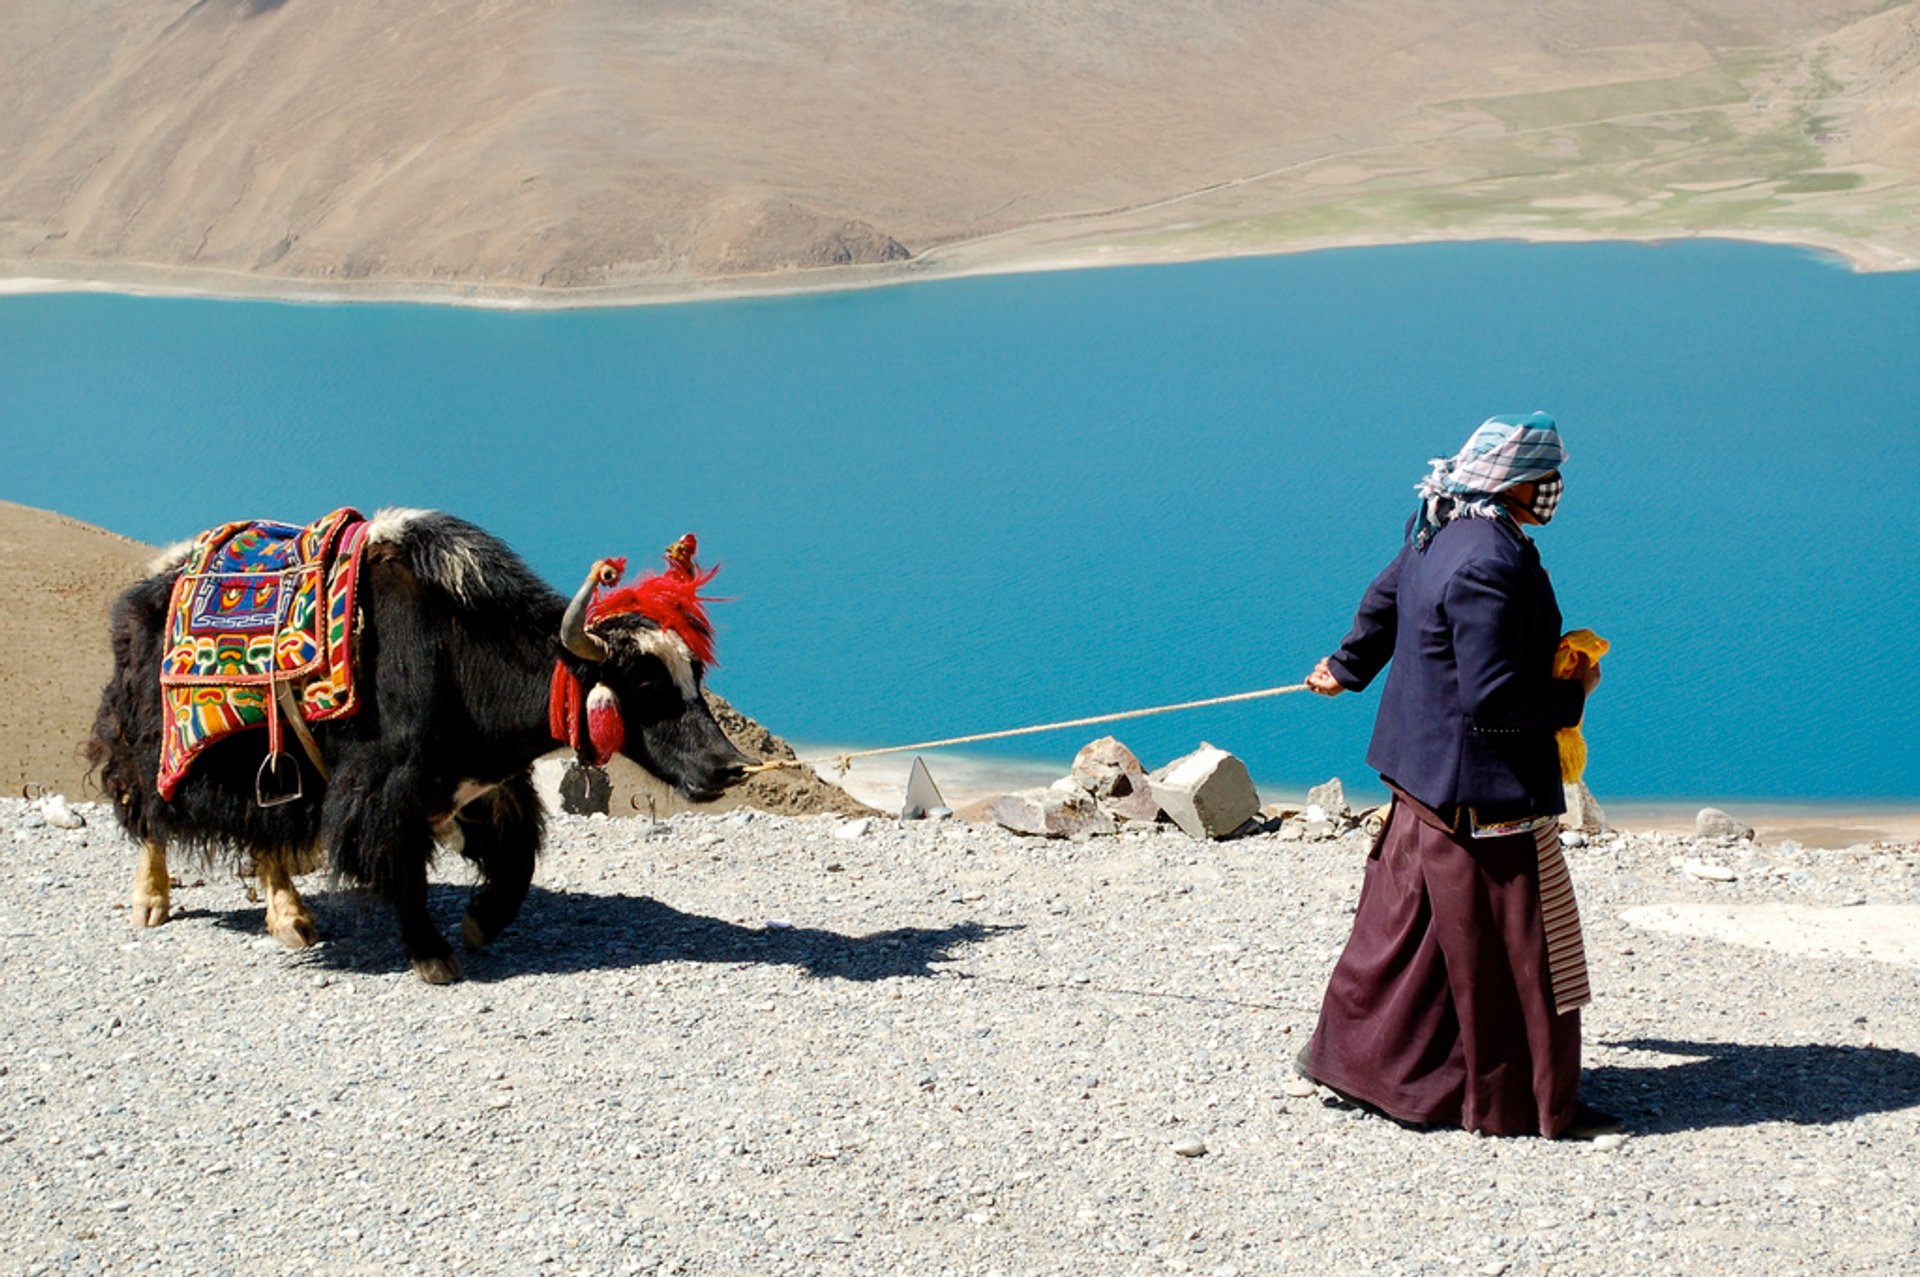 Yaks in Tibet - Best Season 2020